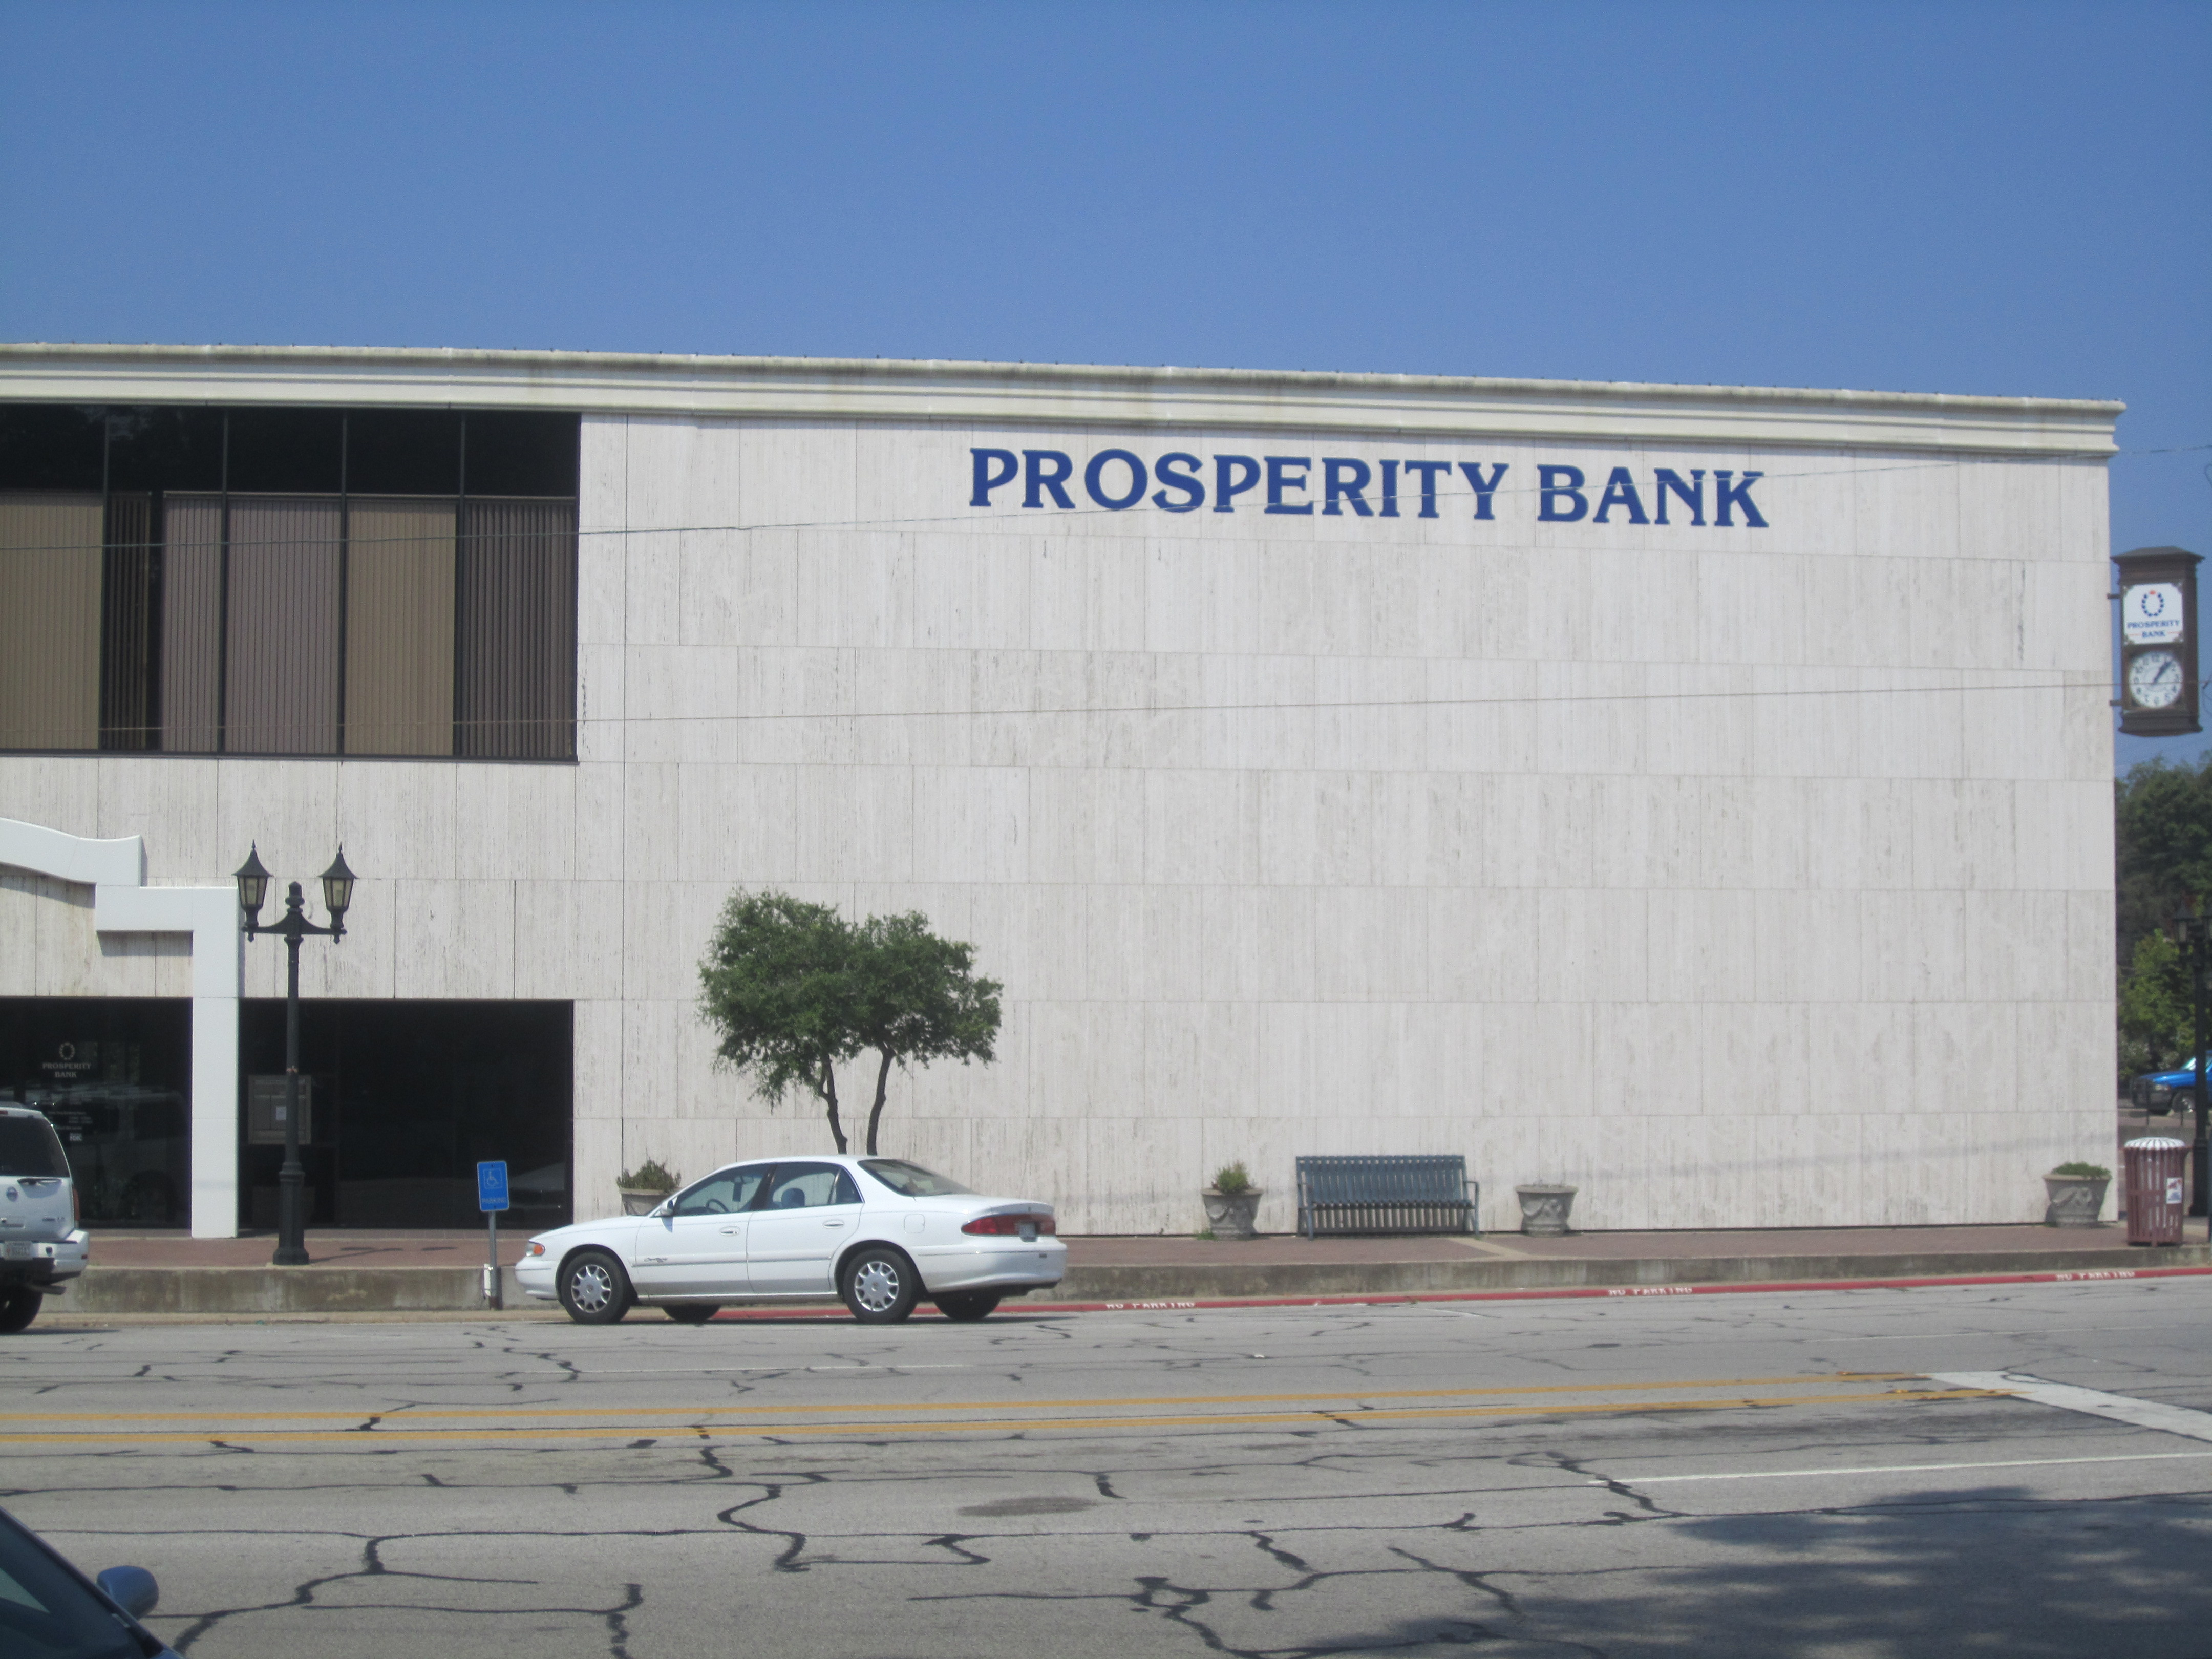 Athens, Texas  Wiki  Everipedia. Management Course Description. Corporate Business Card Small Marketing Firms. Best Banks In Virginia Cerebral Palsy Therapy. What Part Of The Brain Is Affected By Bipolar Disorder. Window Air Conditioner Repair. San Diego Divorce Lawyers Reston Mini Storage. Fleet Management Training Schools Of Ministry. Colorado Mortgage Brokers Global Data Company